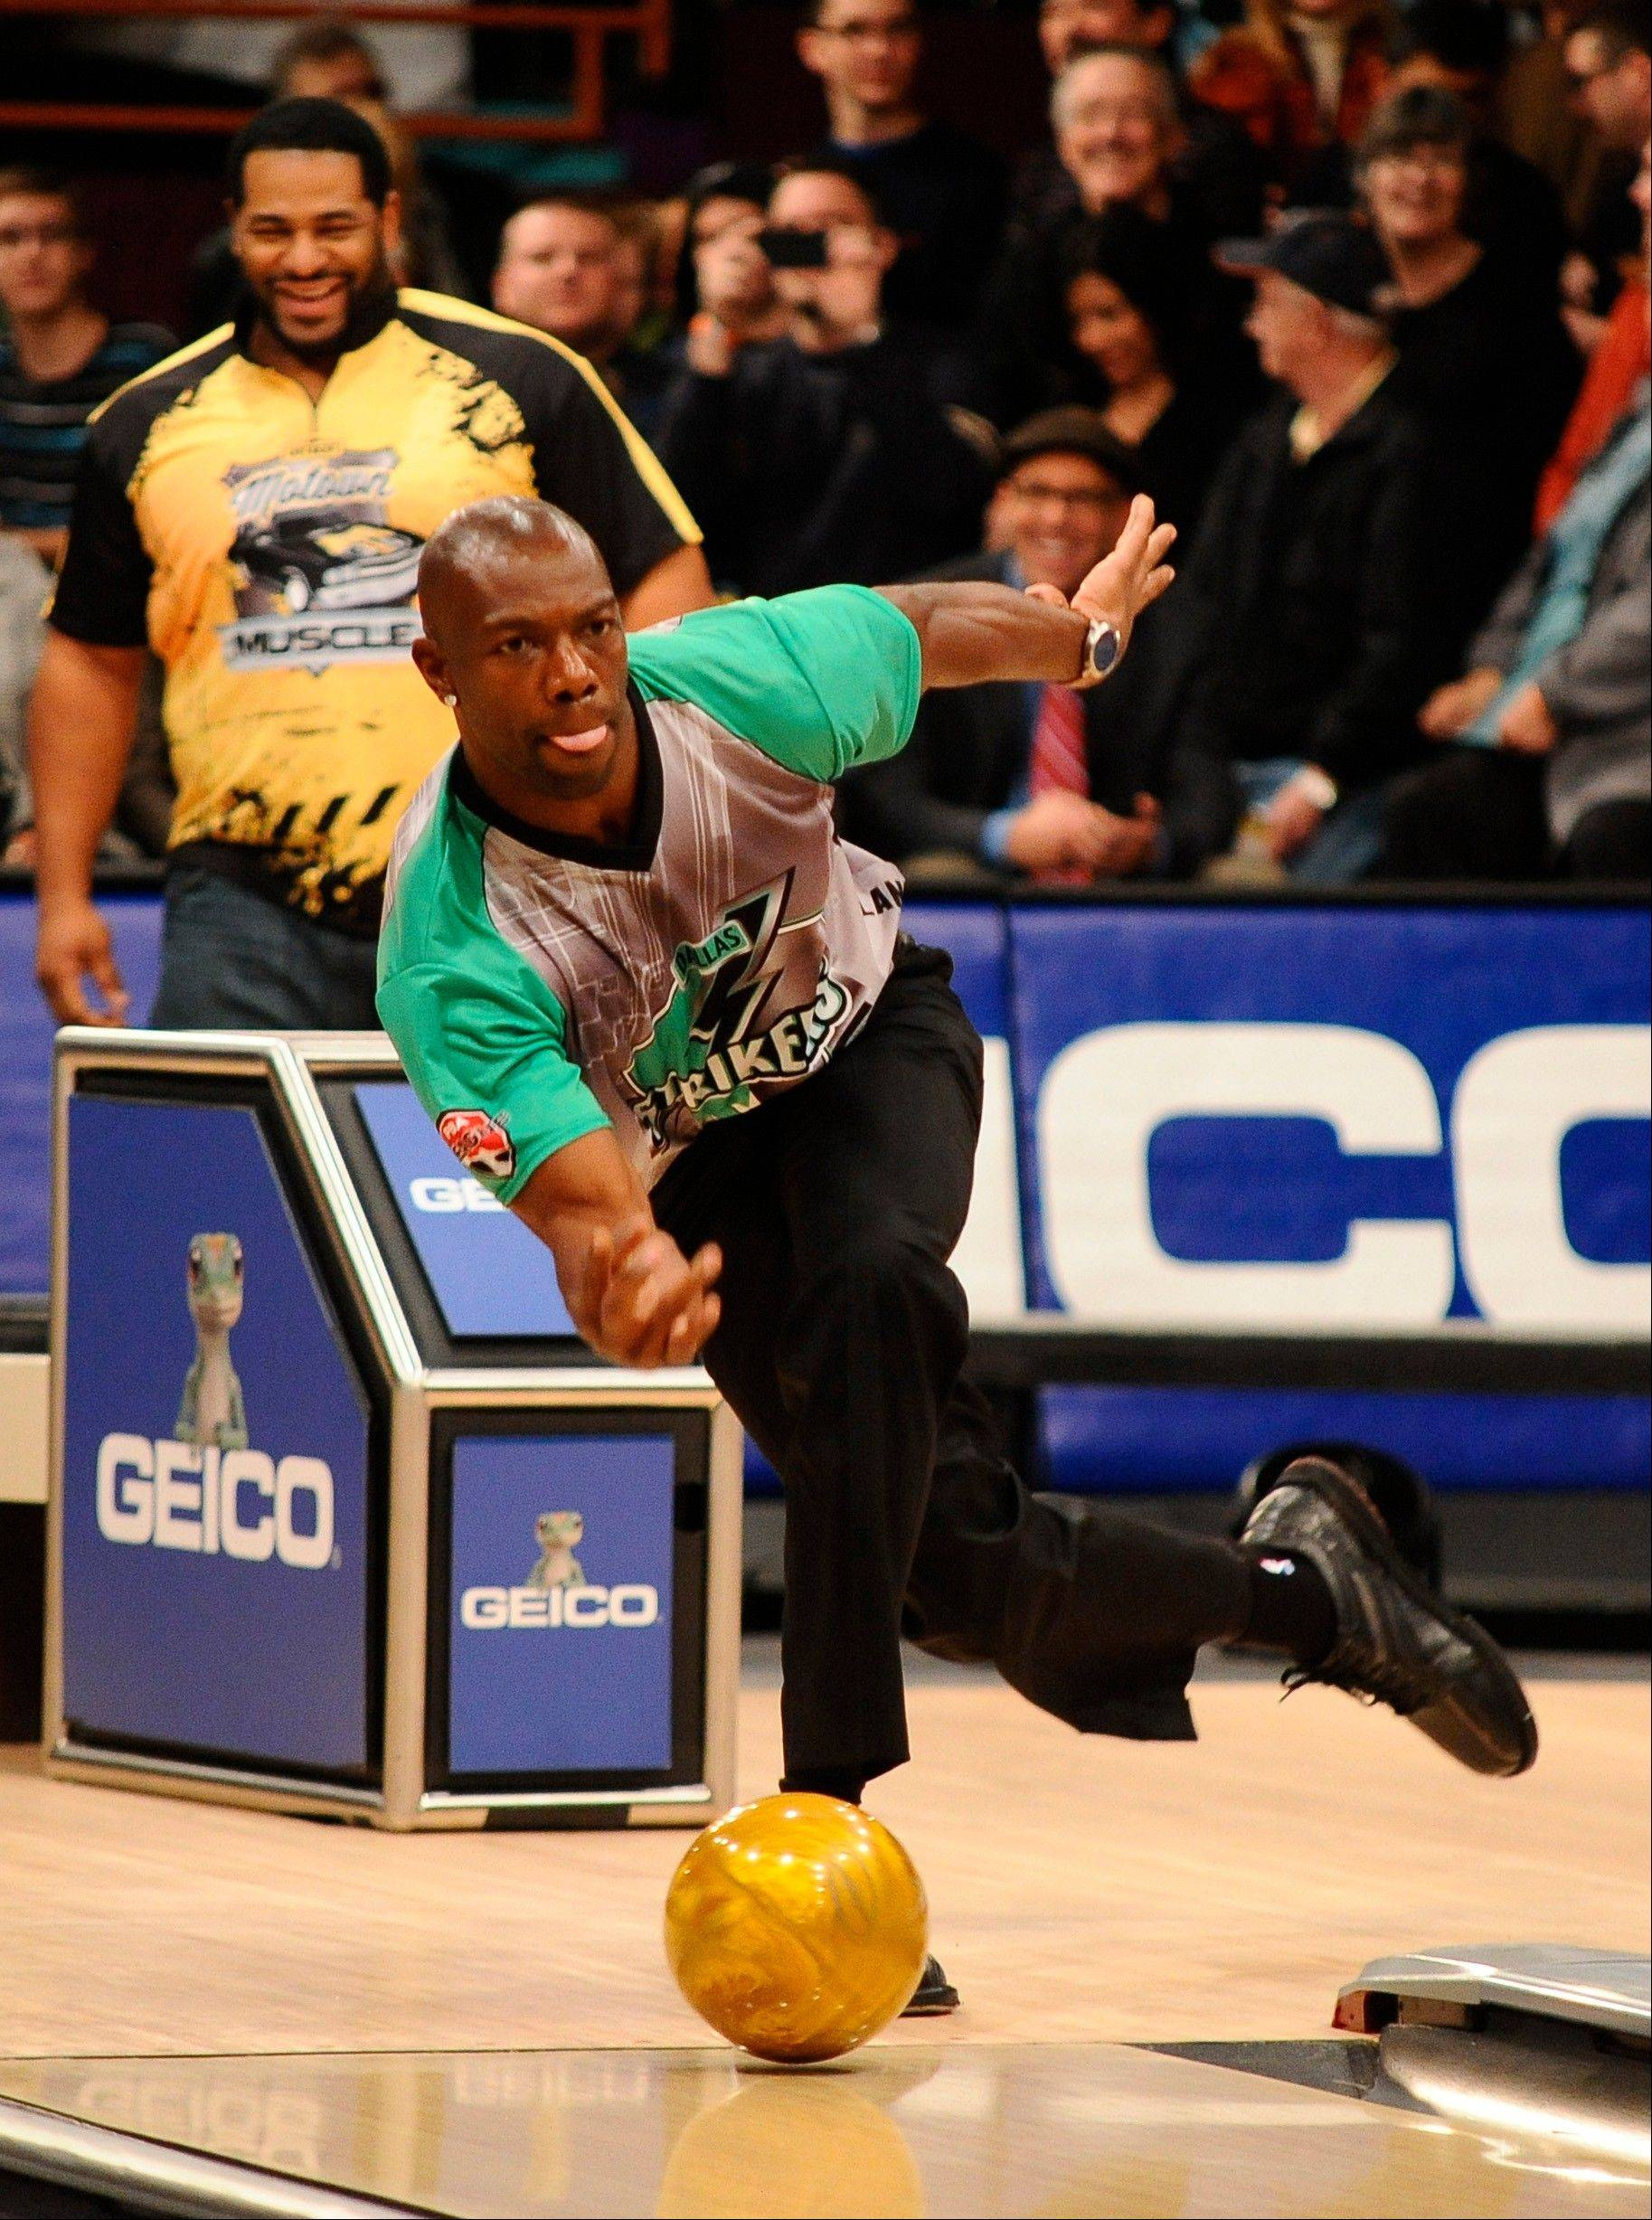 Terrell Owens bowls during the PBA Detroit Winter Swing in January at Thunderbowl Lanes in Allen Park, Mich.